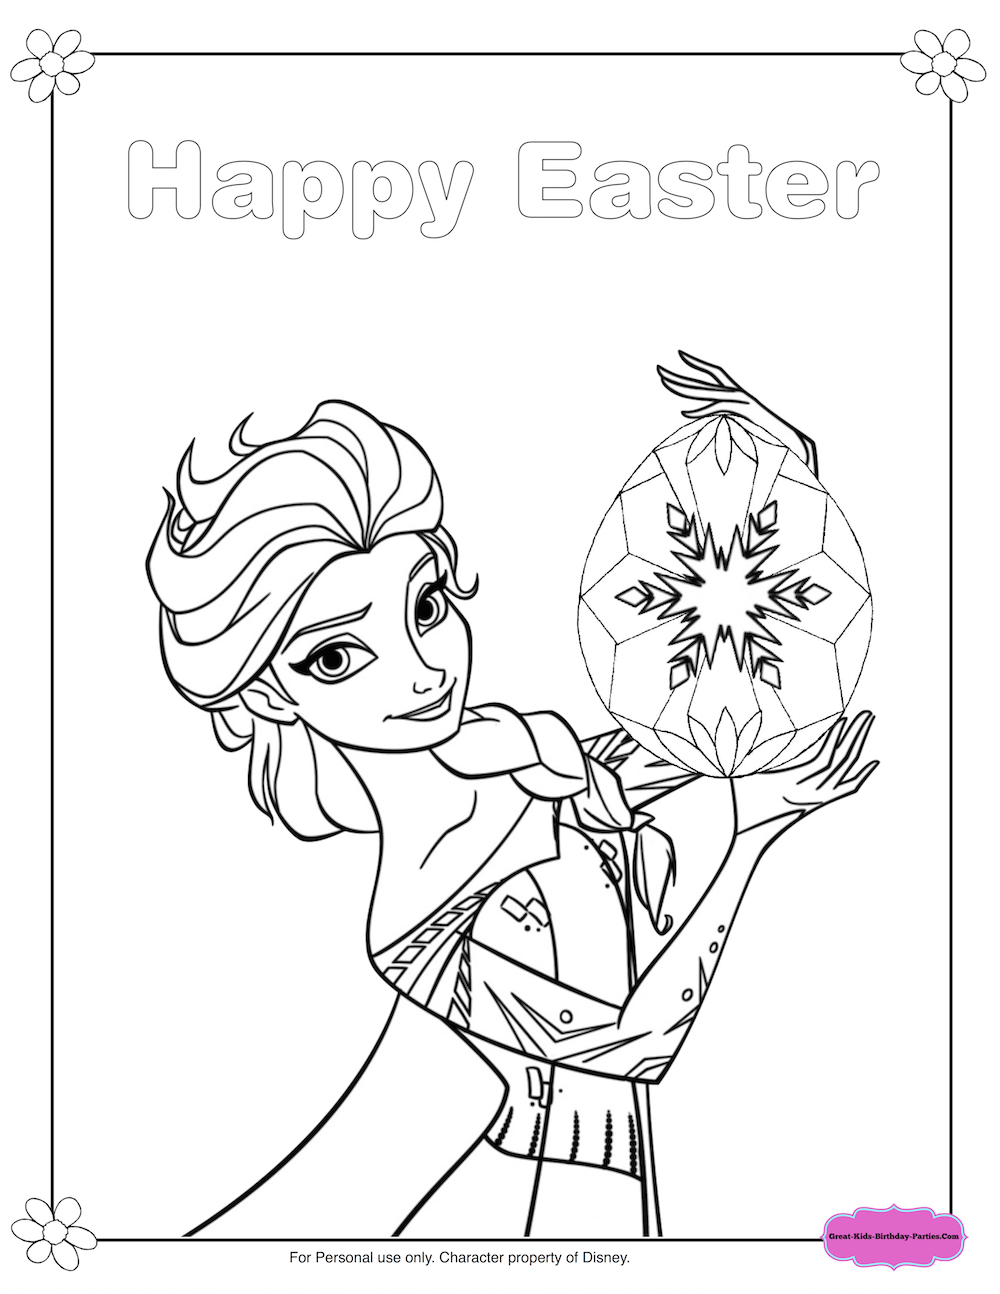 frozen elsa and olaf easter coloring pages fun easter printables for kids